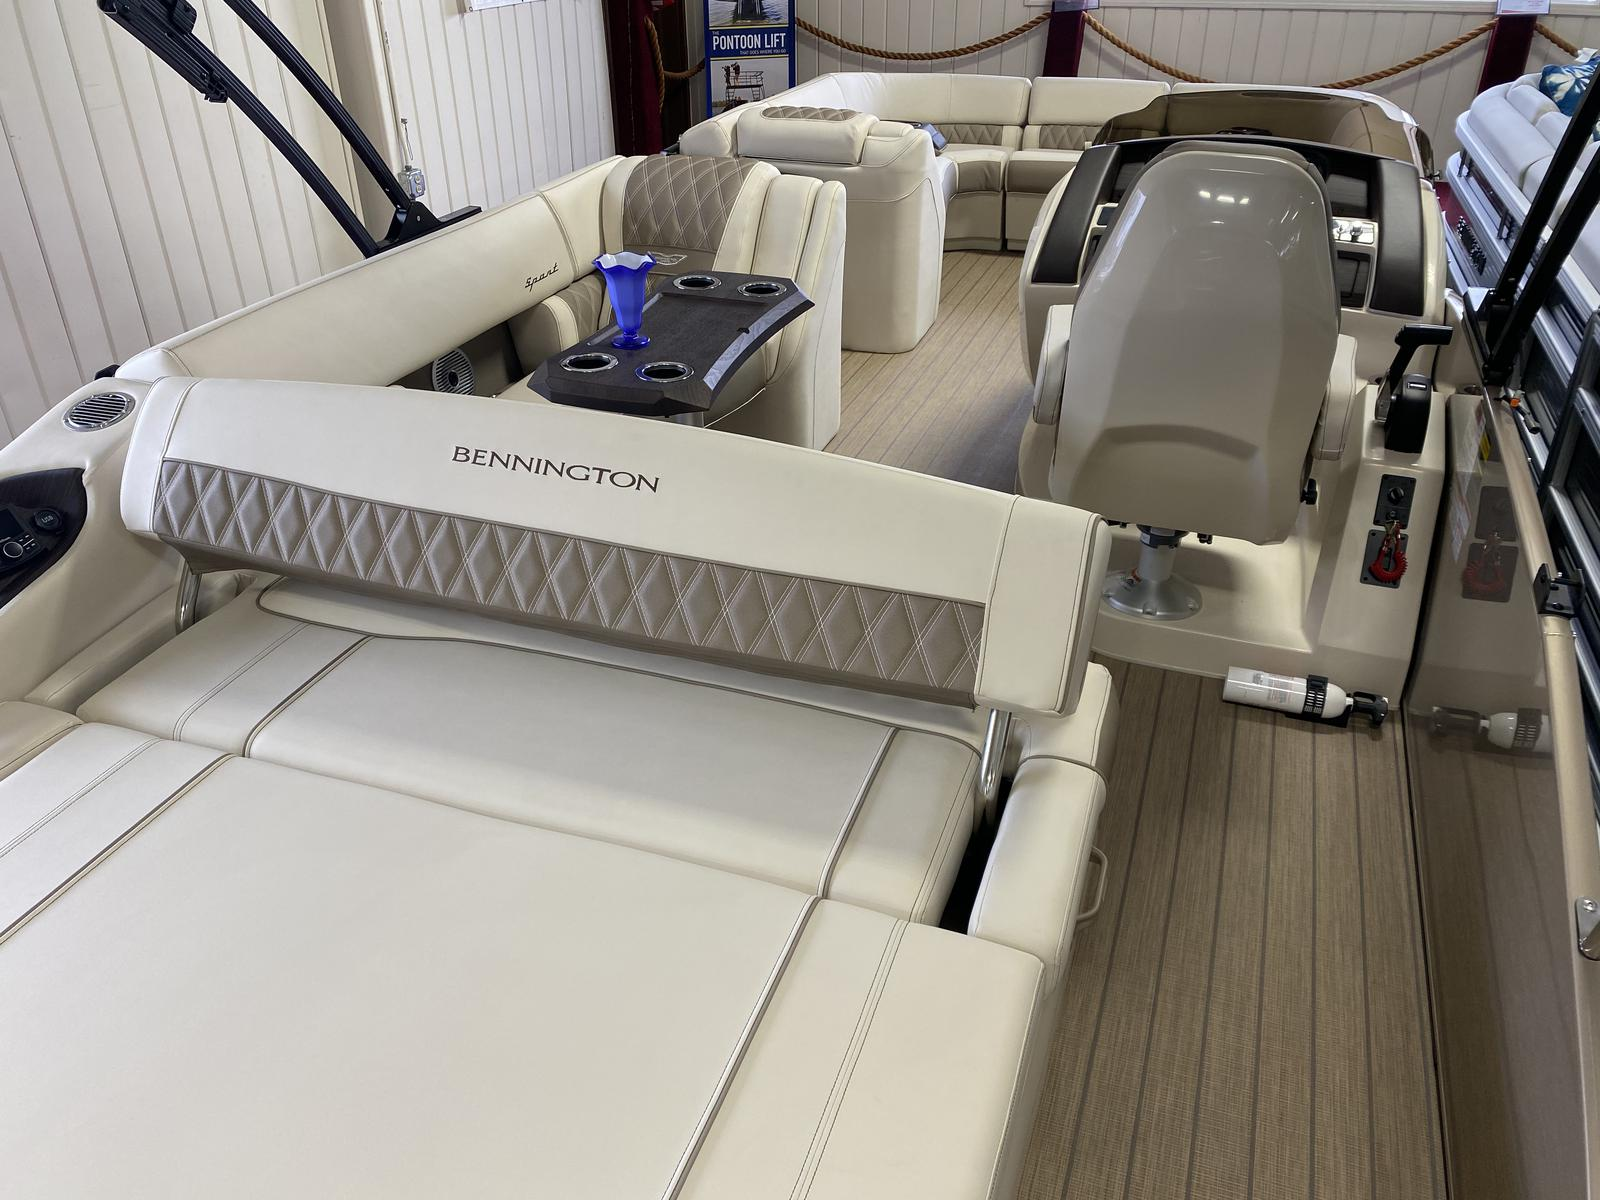 2021 Bennington boat for sale, model of the boat is 23 RXSB & Image # 4 of 7